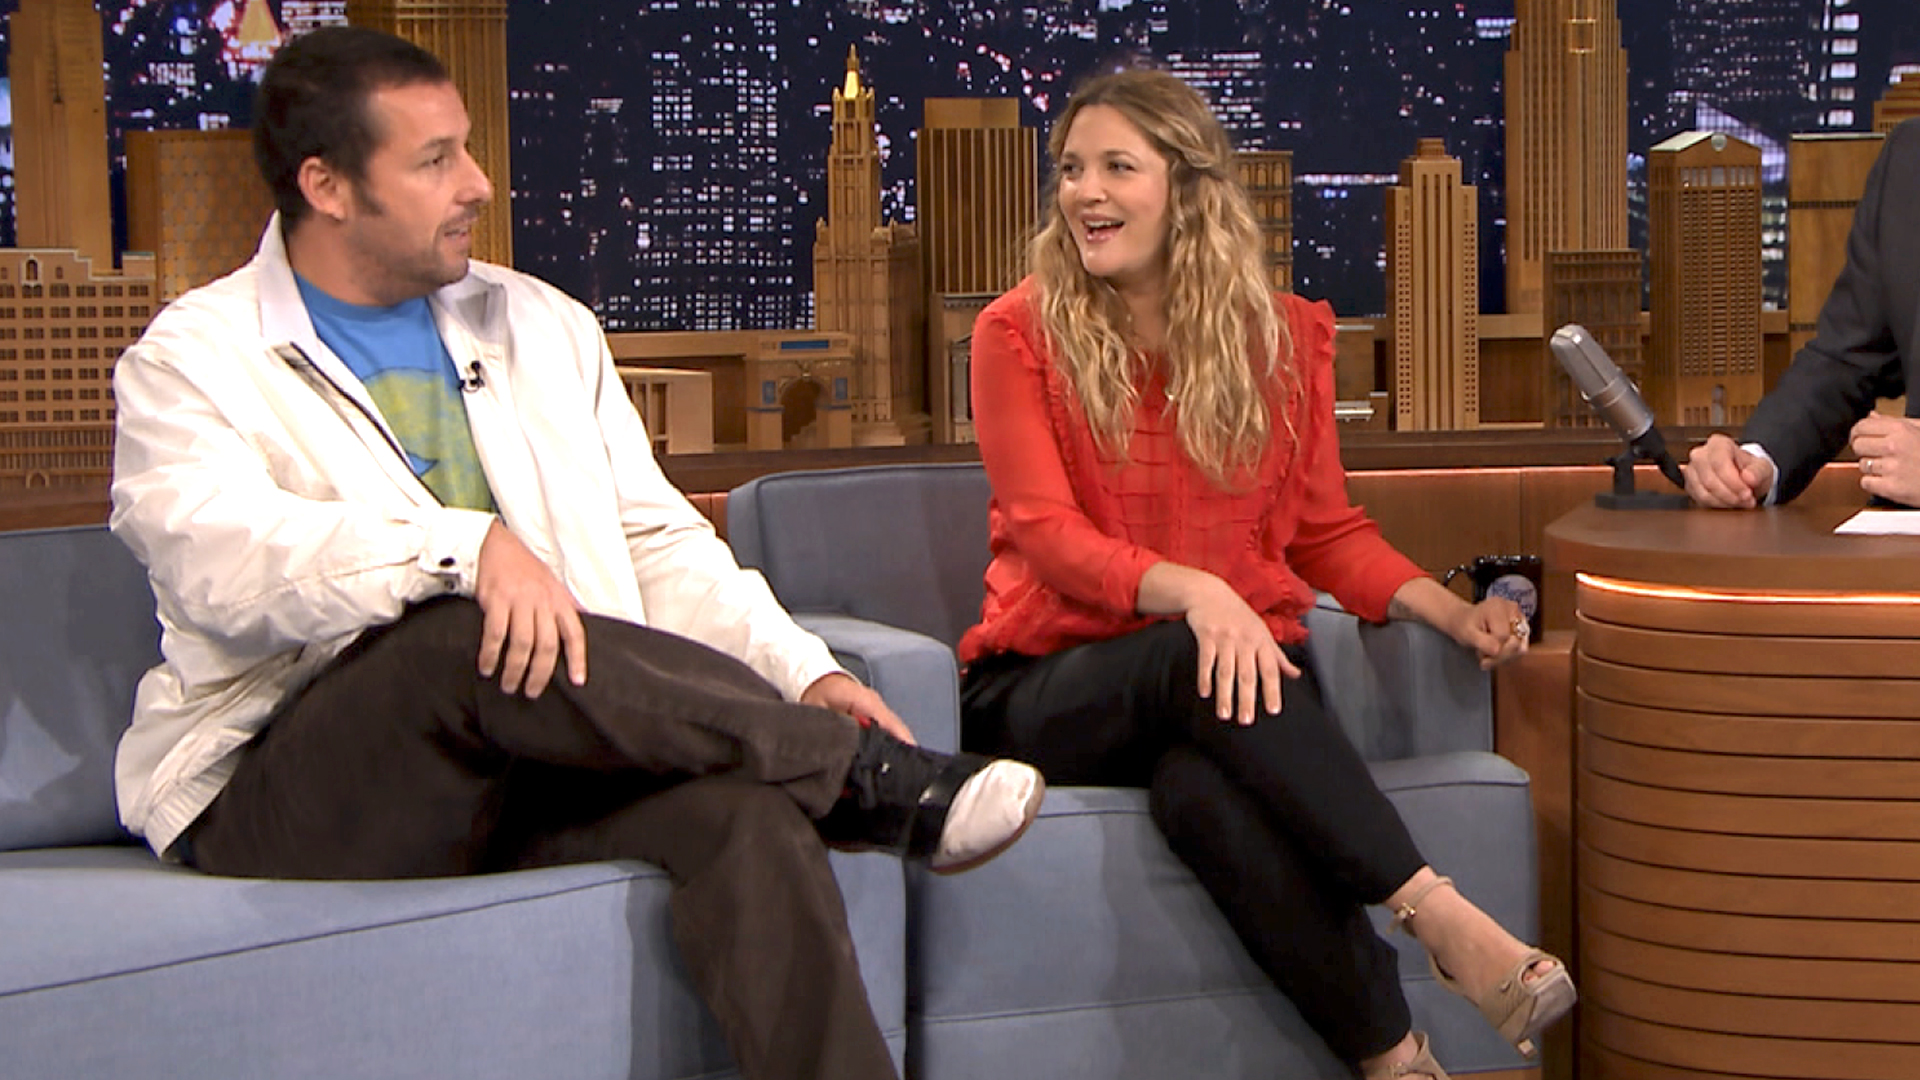 Drew Barrymore Gets a Surprise Call from Adam Sandler ...